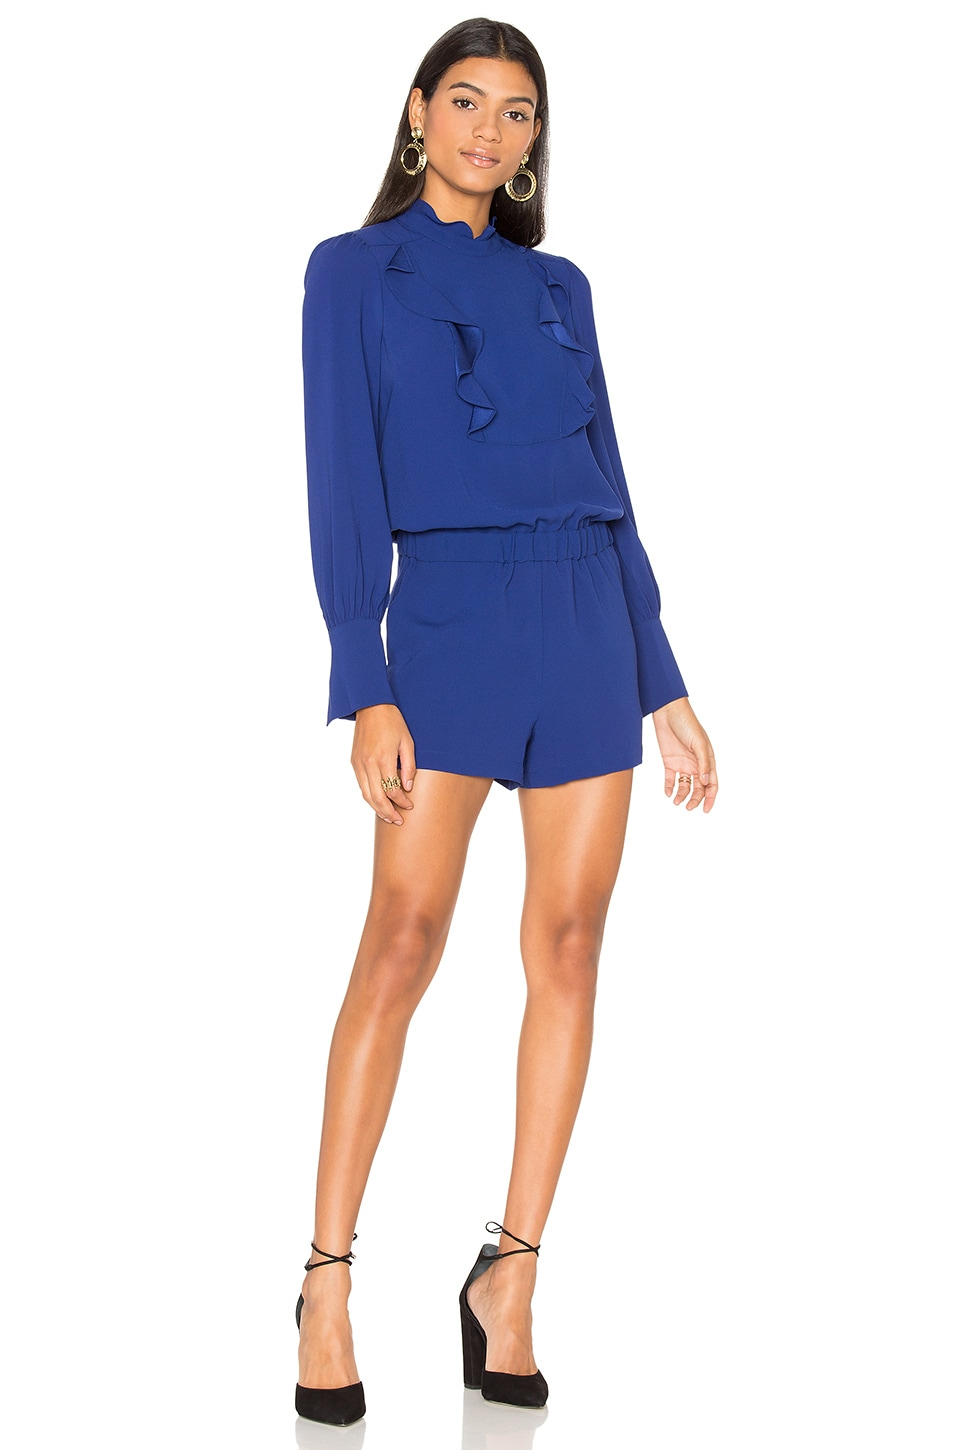 BCBGMAXAZRIA Aimee Romper in Deep Royal Blue